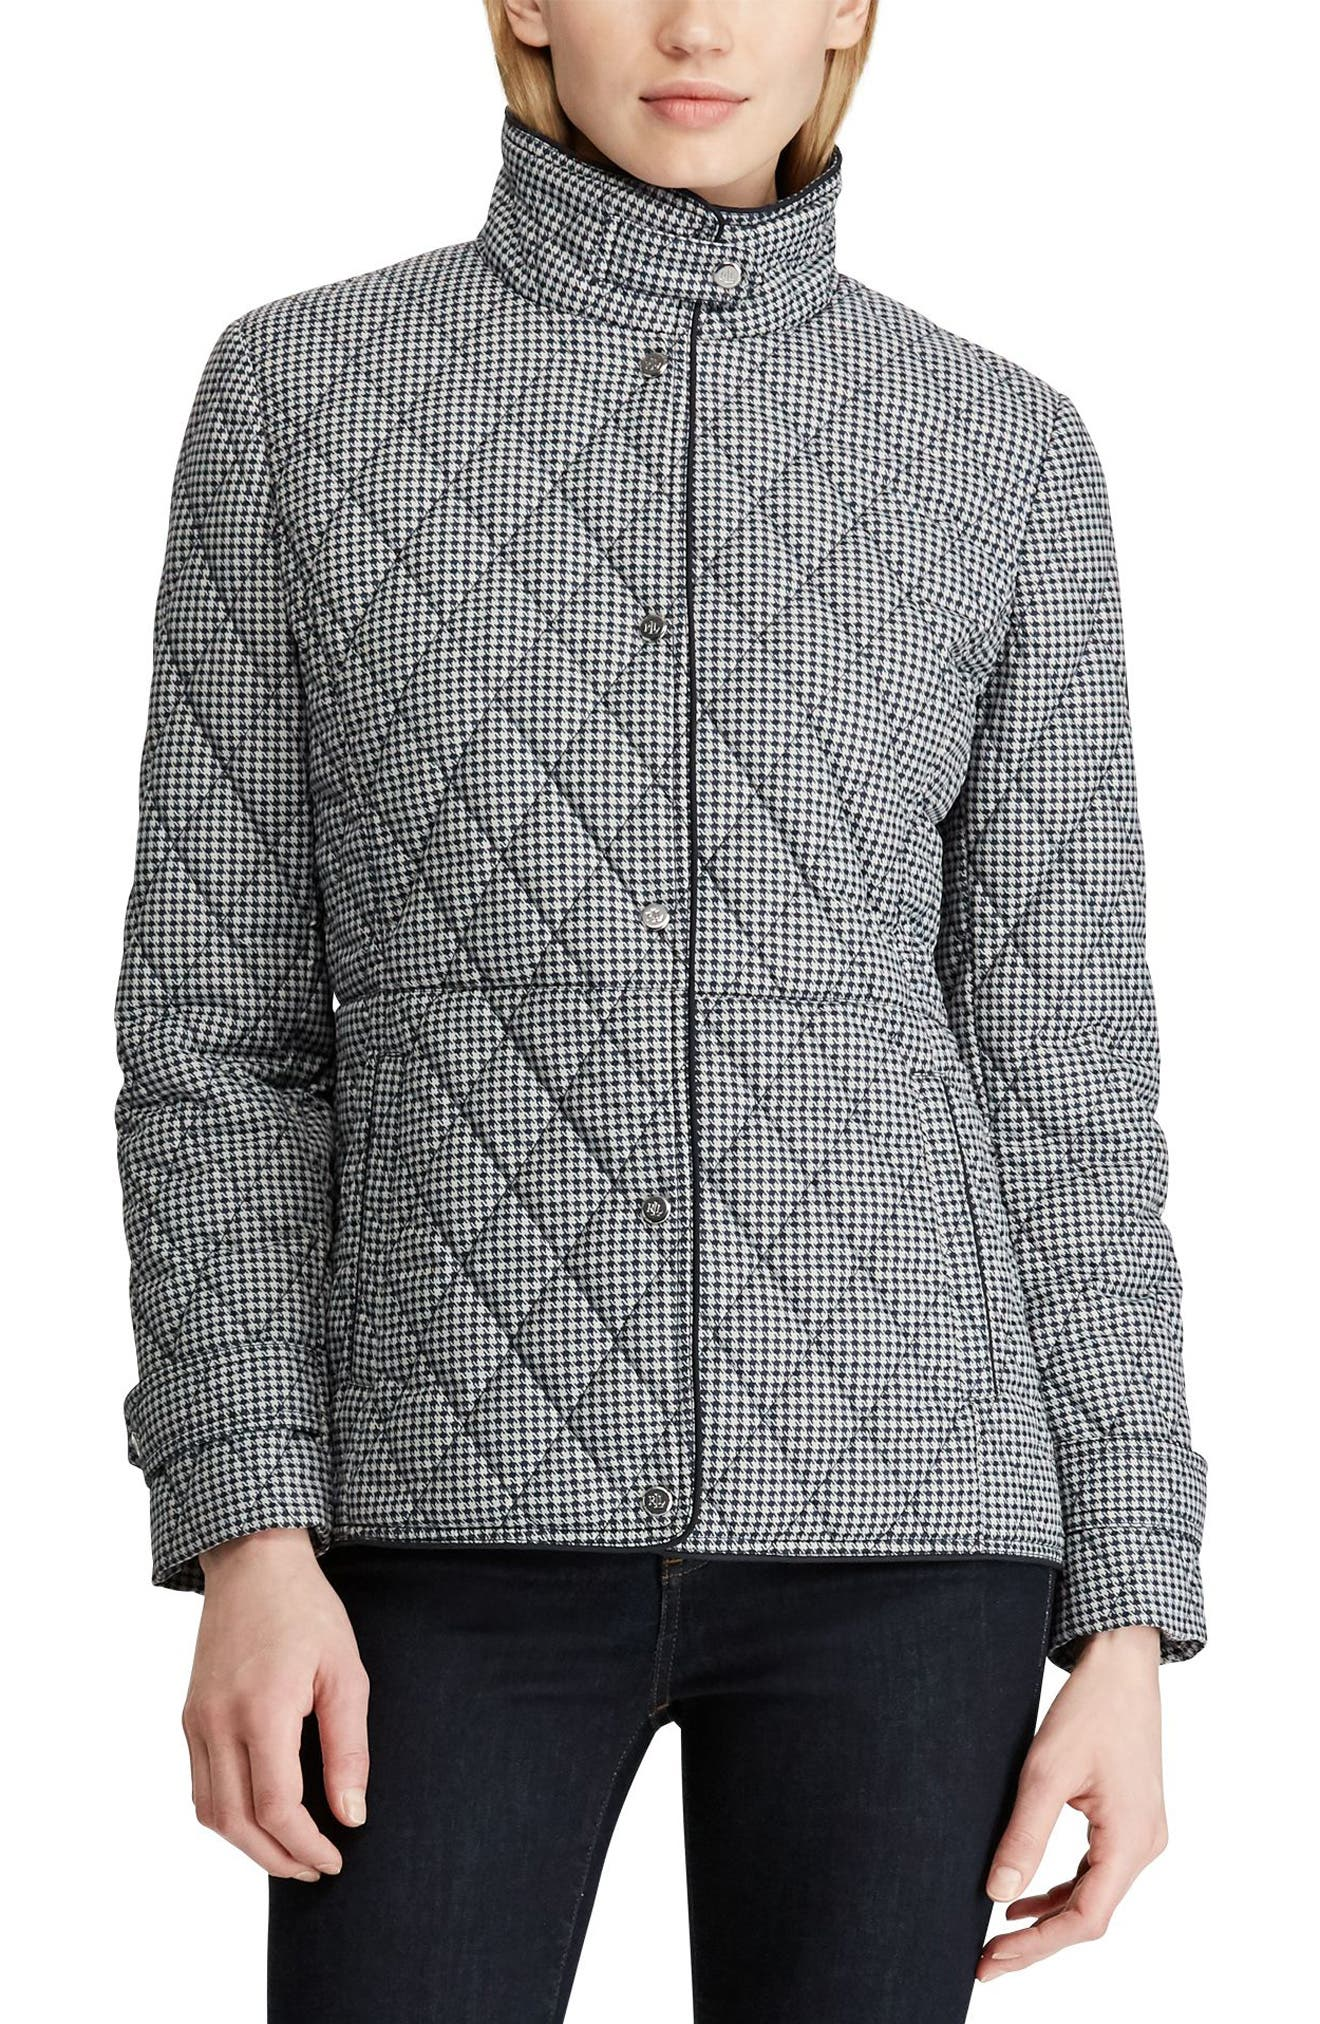 LAUREN RALPH LAUREN Houndstooth Quilted Military Jacket, Main, color, DK NAVY HOUNDSTOOTH